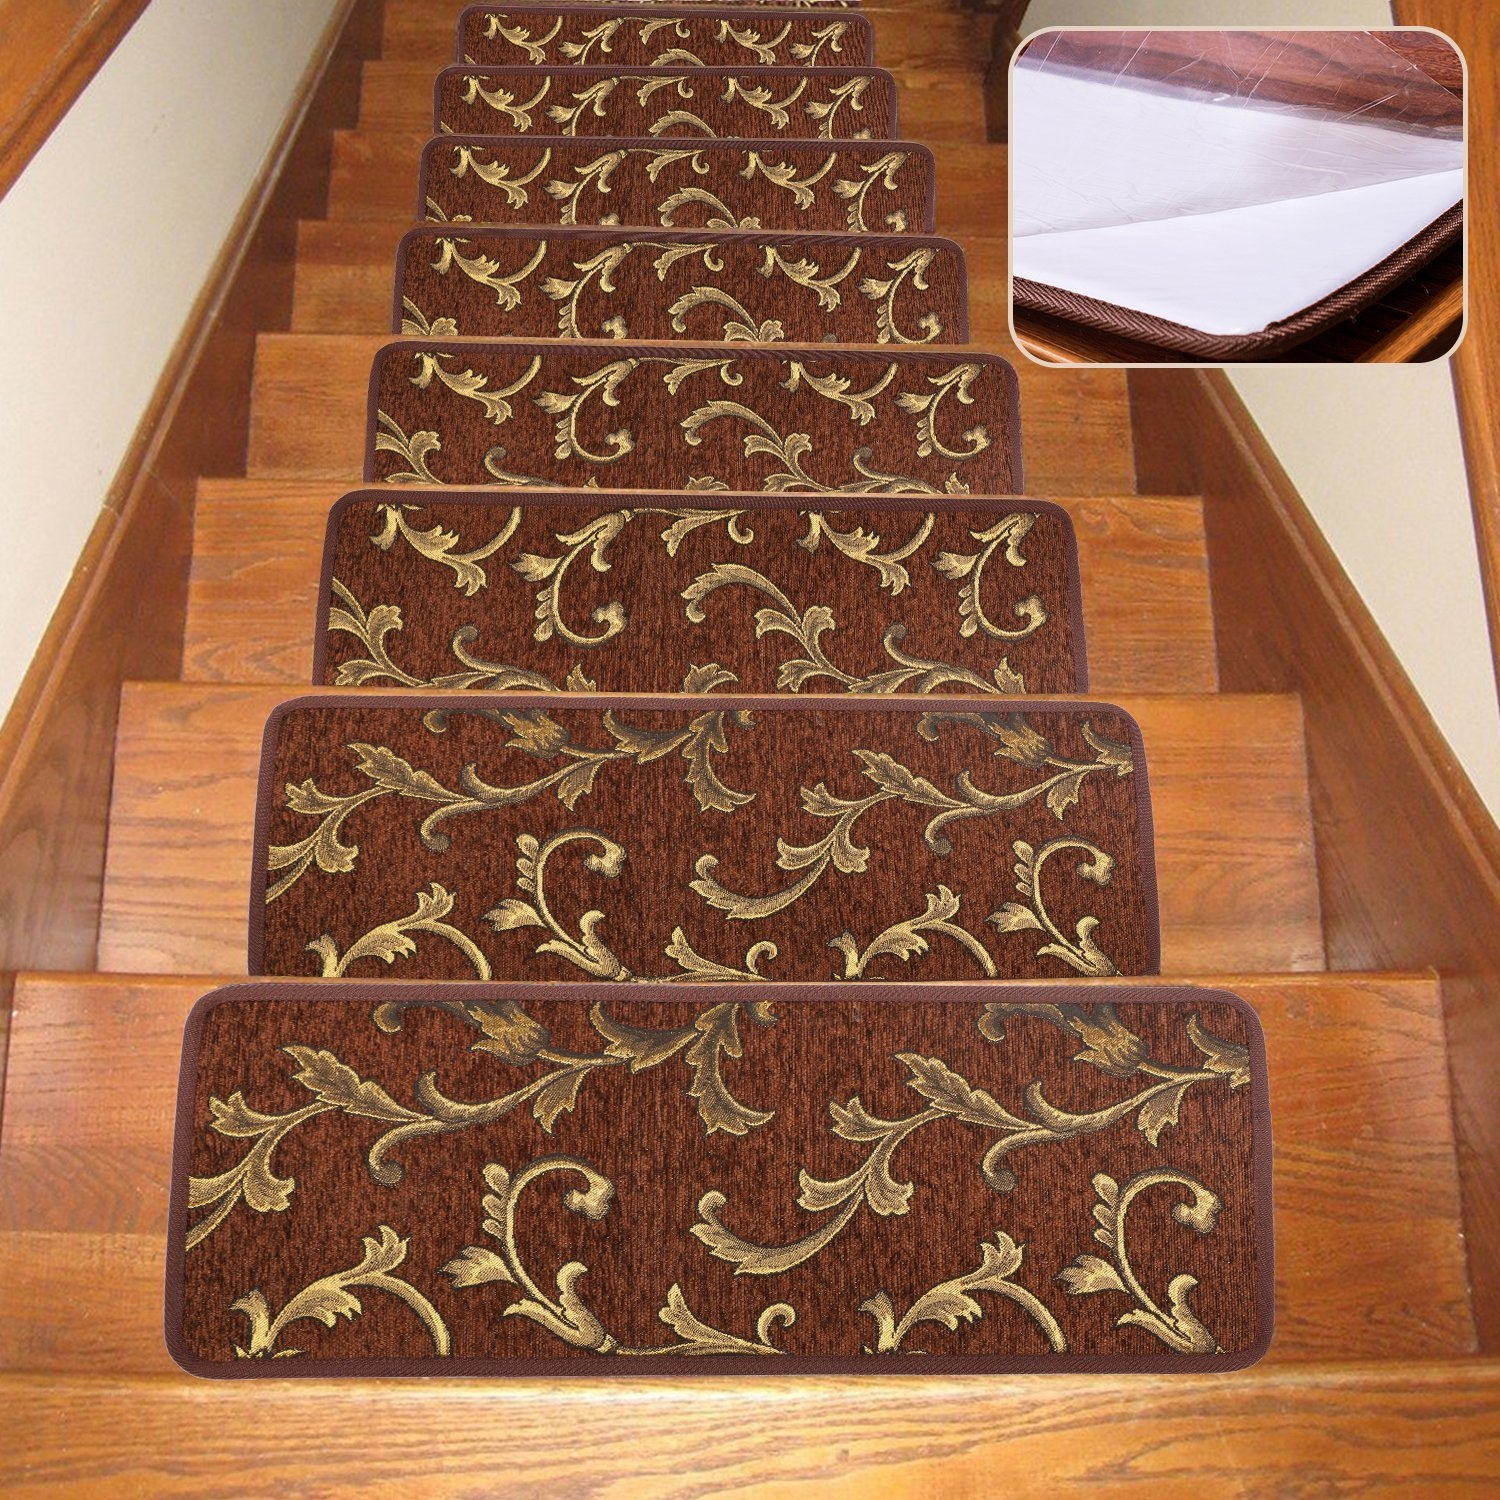 Soloom Non Slip Stair Treads Carpet Indoor Set Of 13 Blended Pertaining To Rubber Backed Stair Tread Rugs (View 3 of 20)